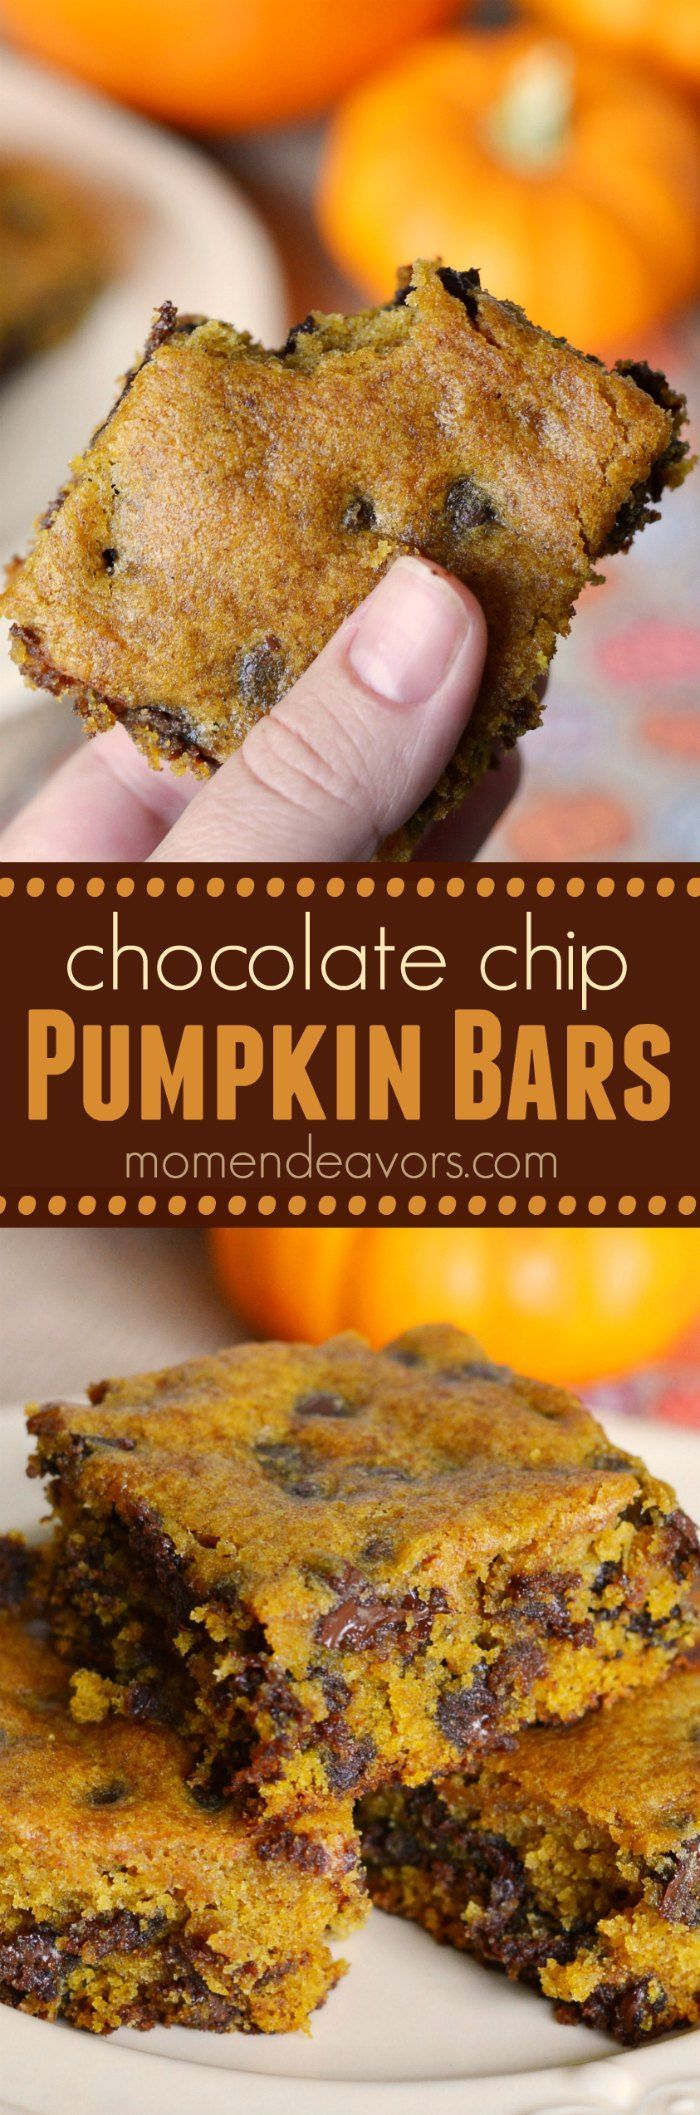 Pumpkin Chocolate Chip Bars - a chewy, delicious fall dessert! (Butter Brownies Coconut Oil)